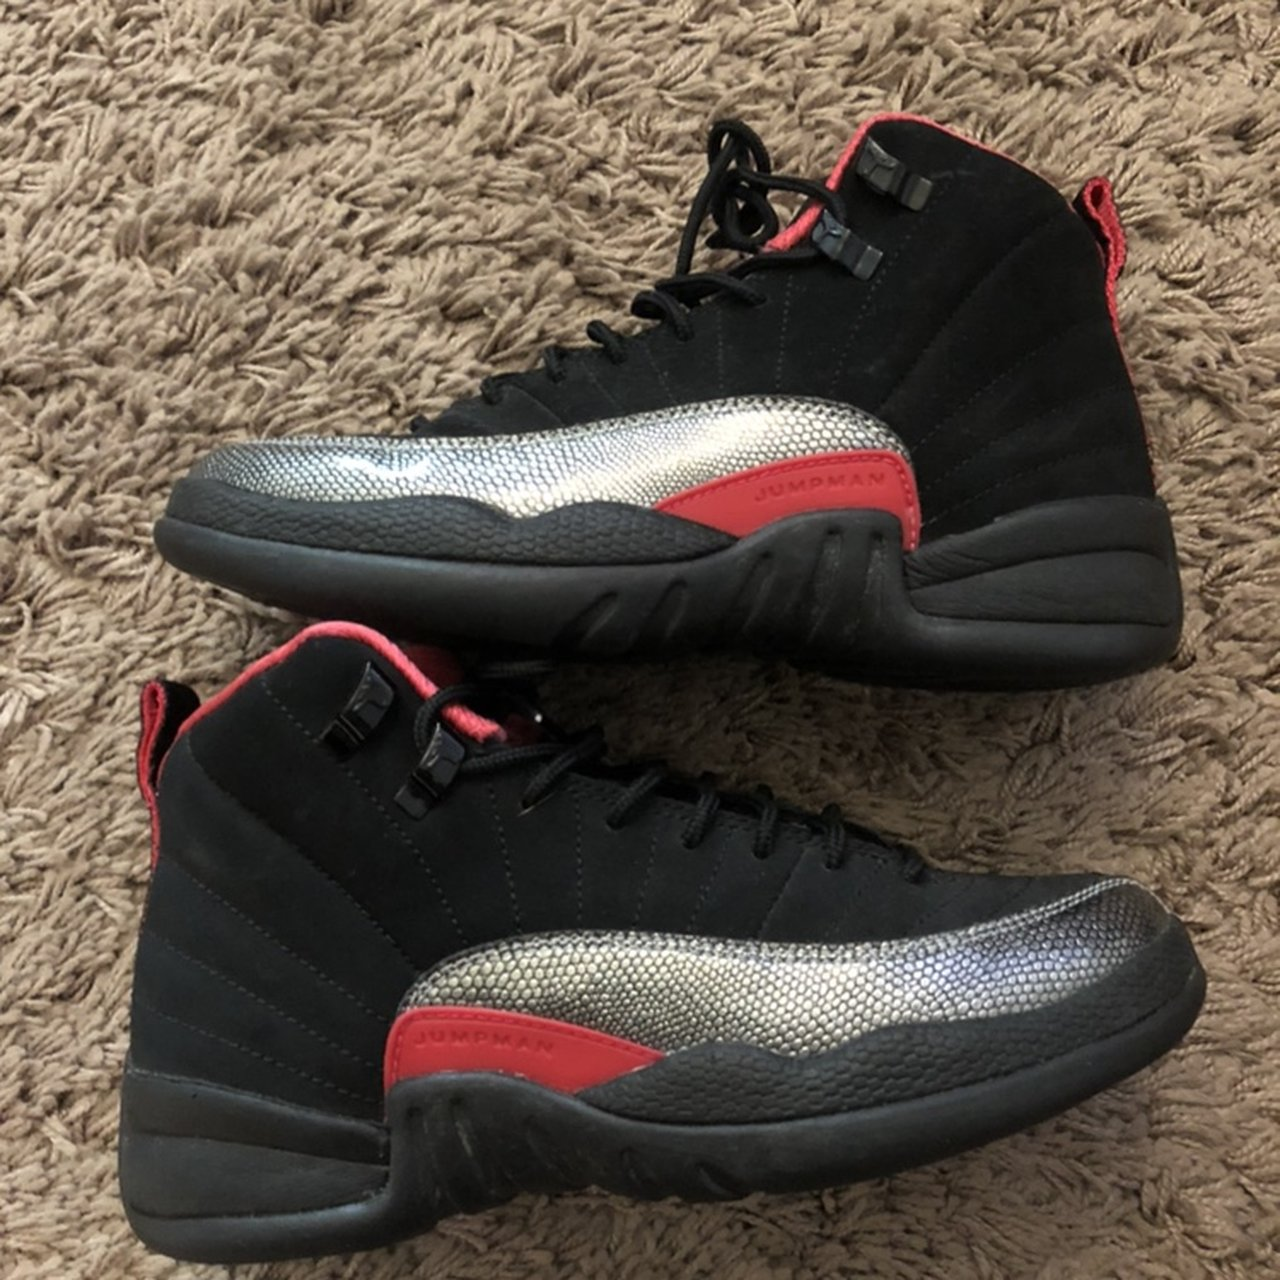 Women s Retro Jordan 12 s black with hot pink size 4 youth - Depop 315c5ef70